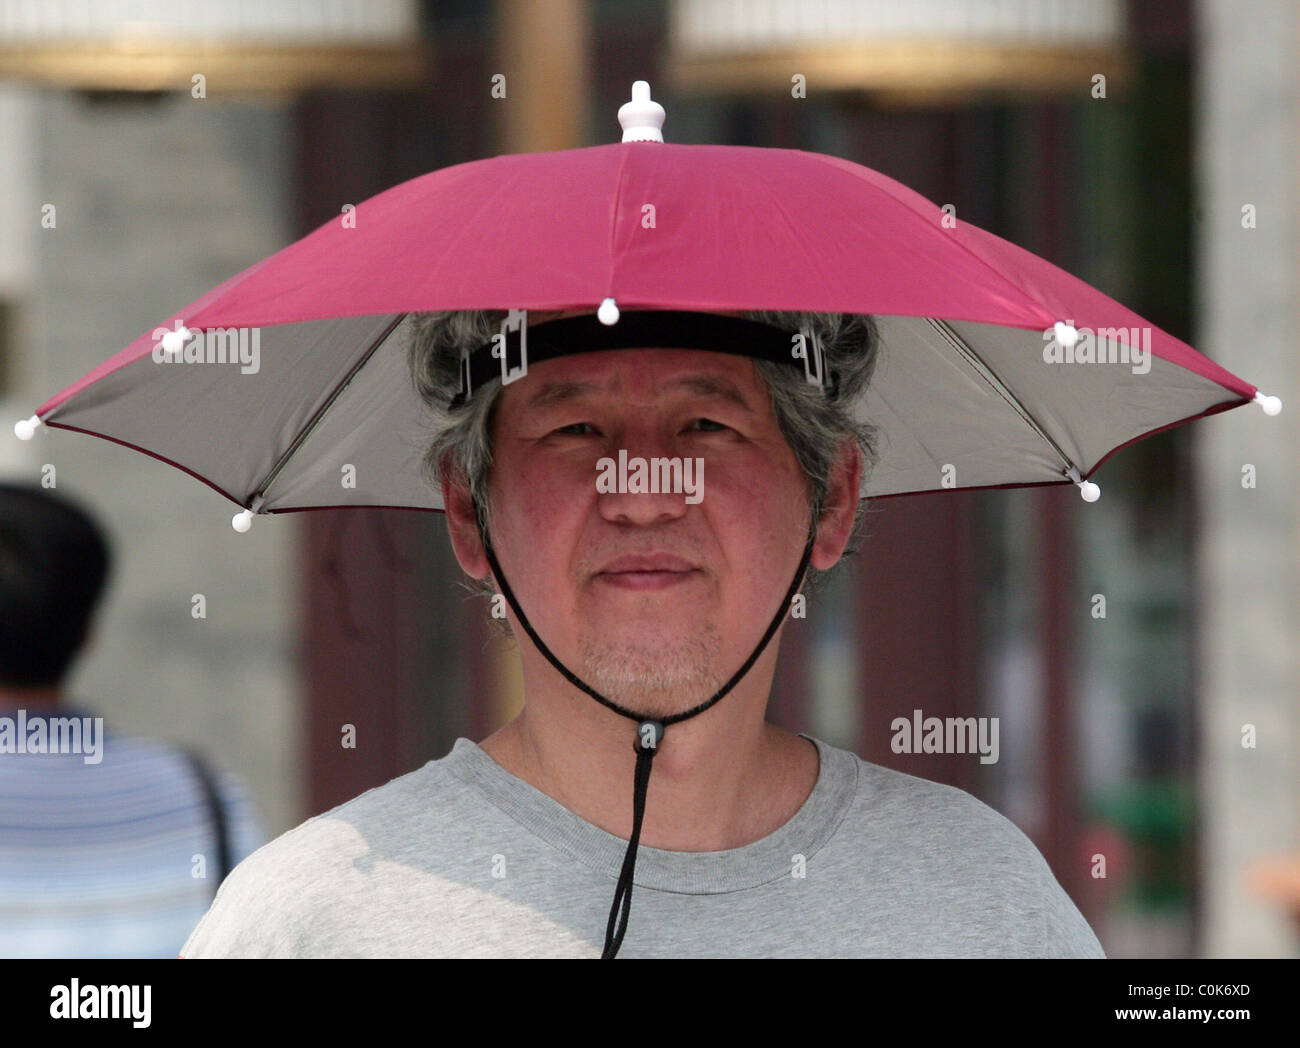 4e8e93614 An elderly lady wears an umbrella hat to protect against the hot sun ...